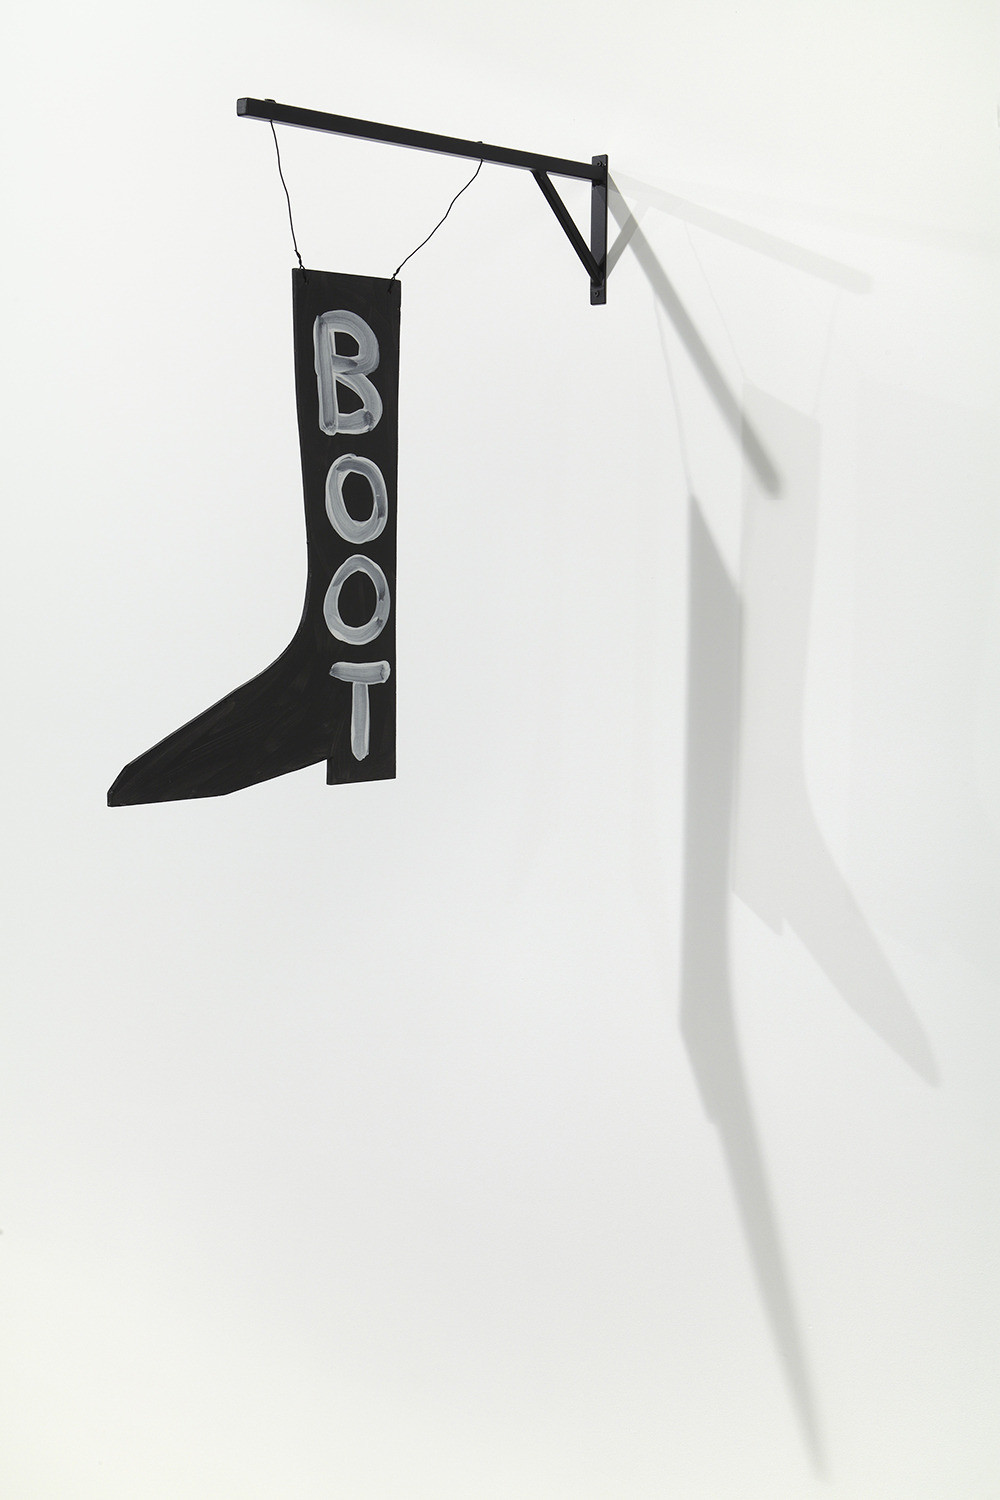 David Shrigley, Boot, 2012, Acrylic on plywood with steel armature 23 3/4 x 16 1/4 x 1/4 inches (sign), Courtesy Anton Kern Gallery, New York